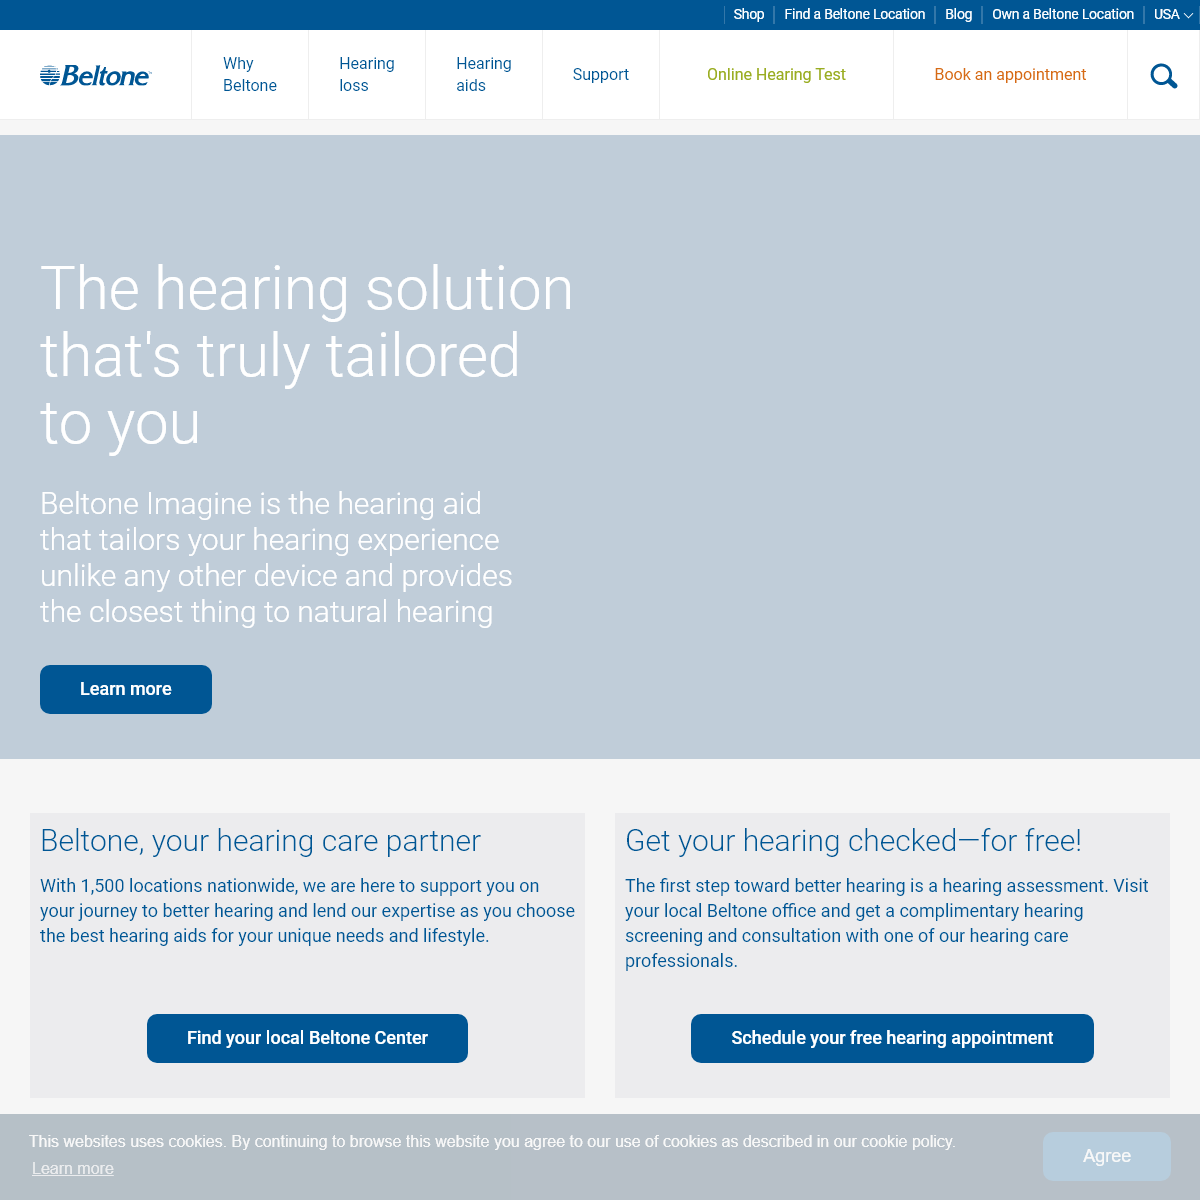 Beltone Hearing Aids - Award winning Solutions For Your Hearing Loss - Beltone